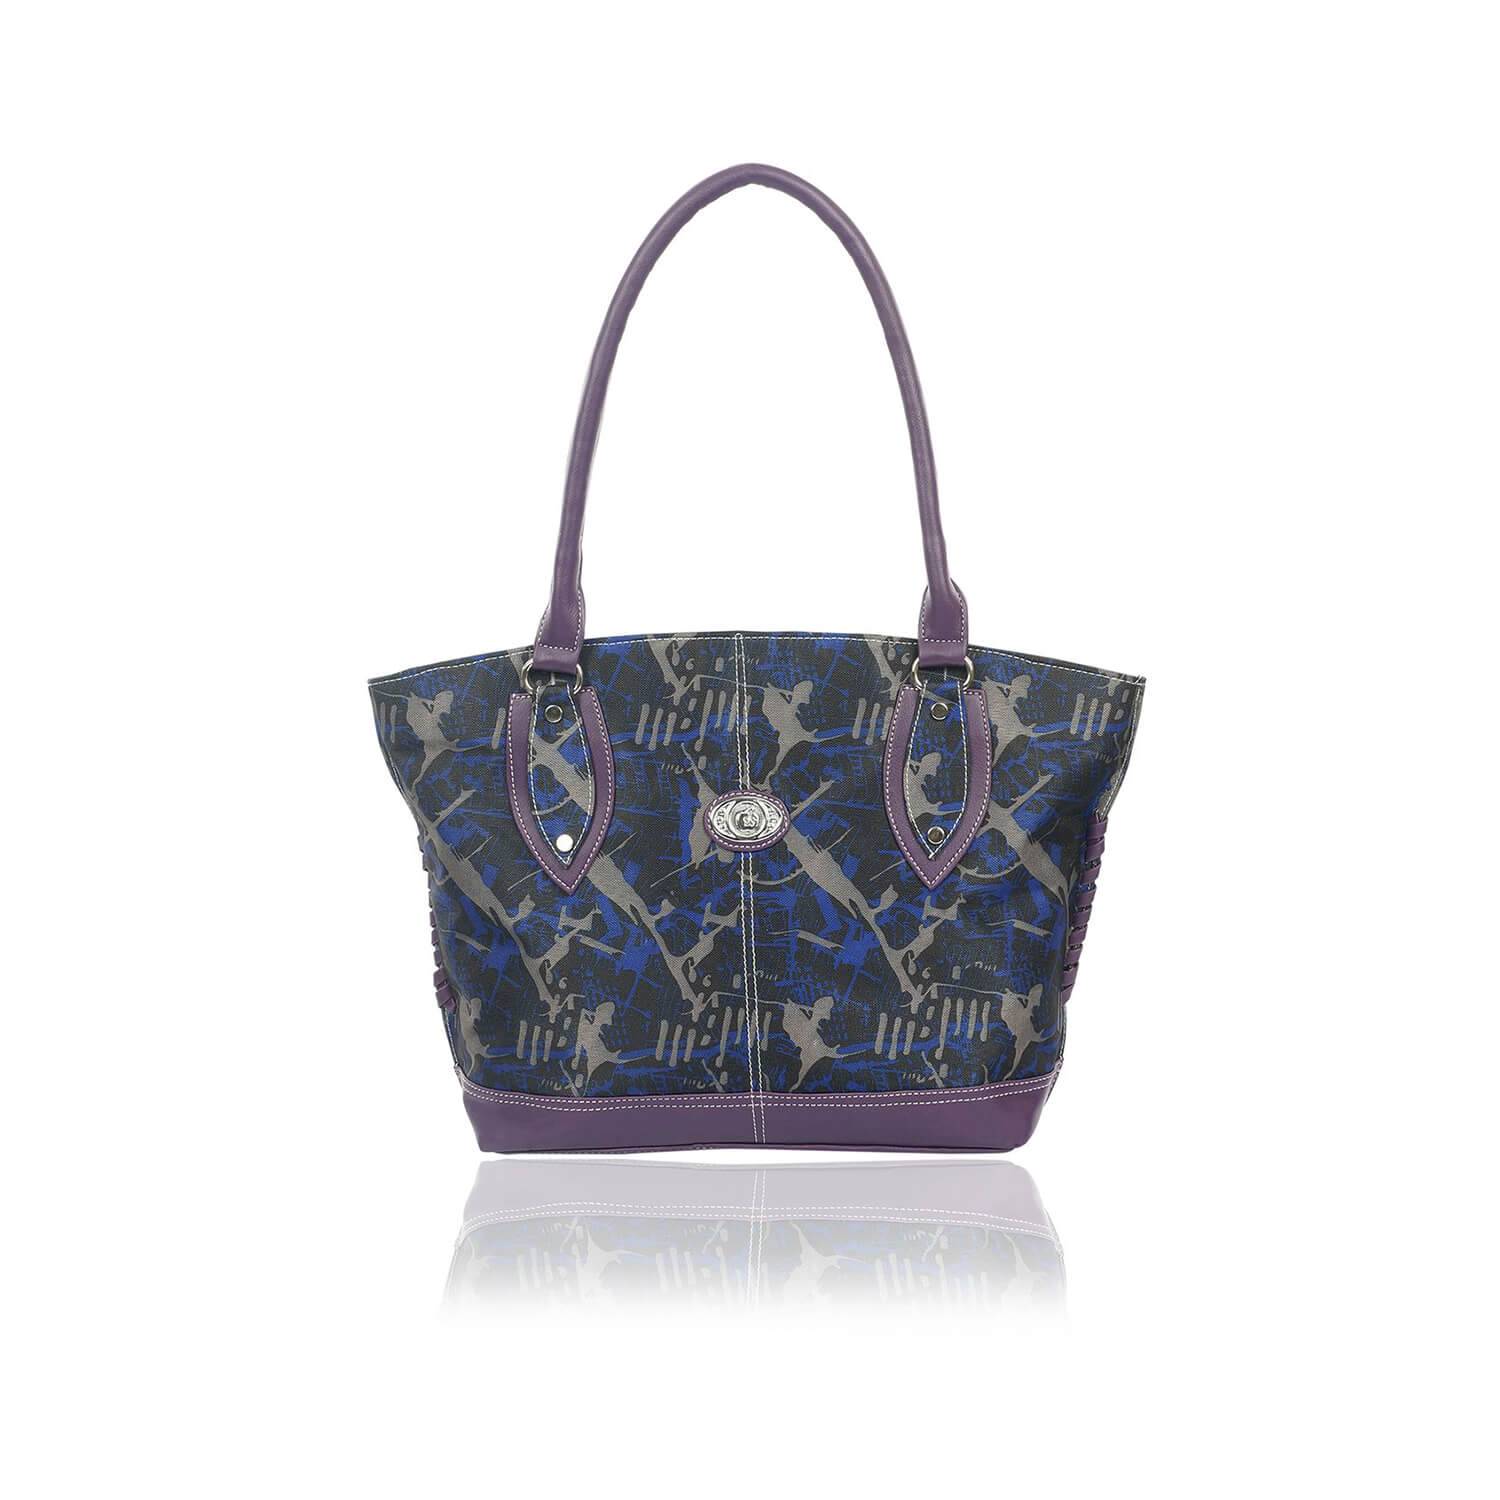 Right Choice RCH263women's handbags(Purple)contemporary,trending